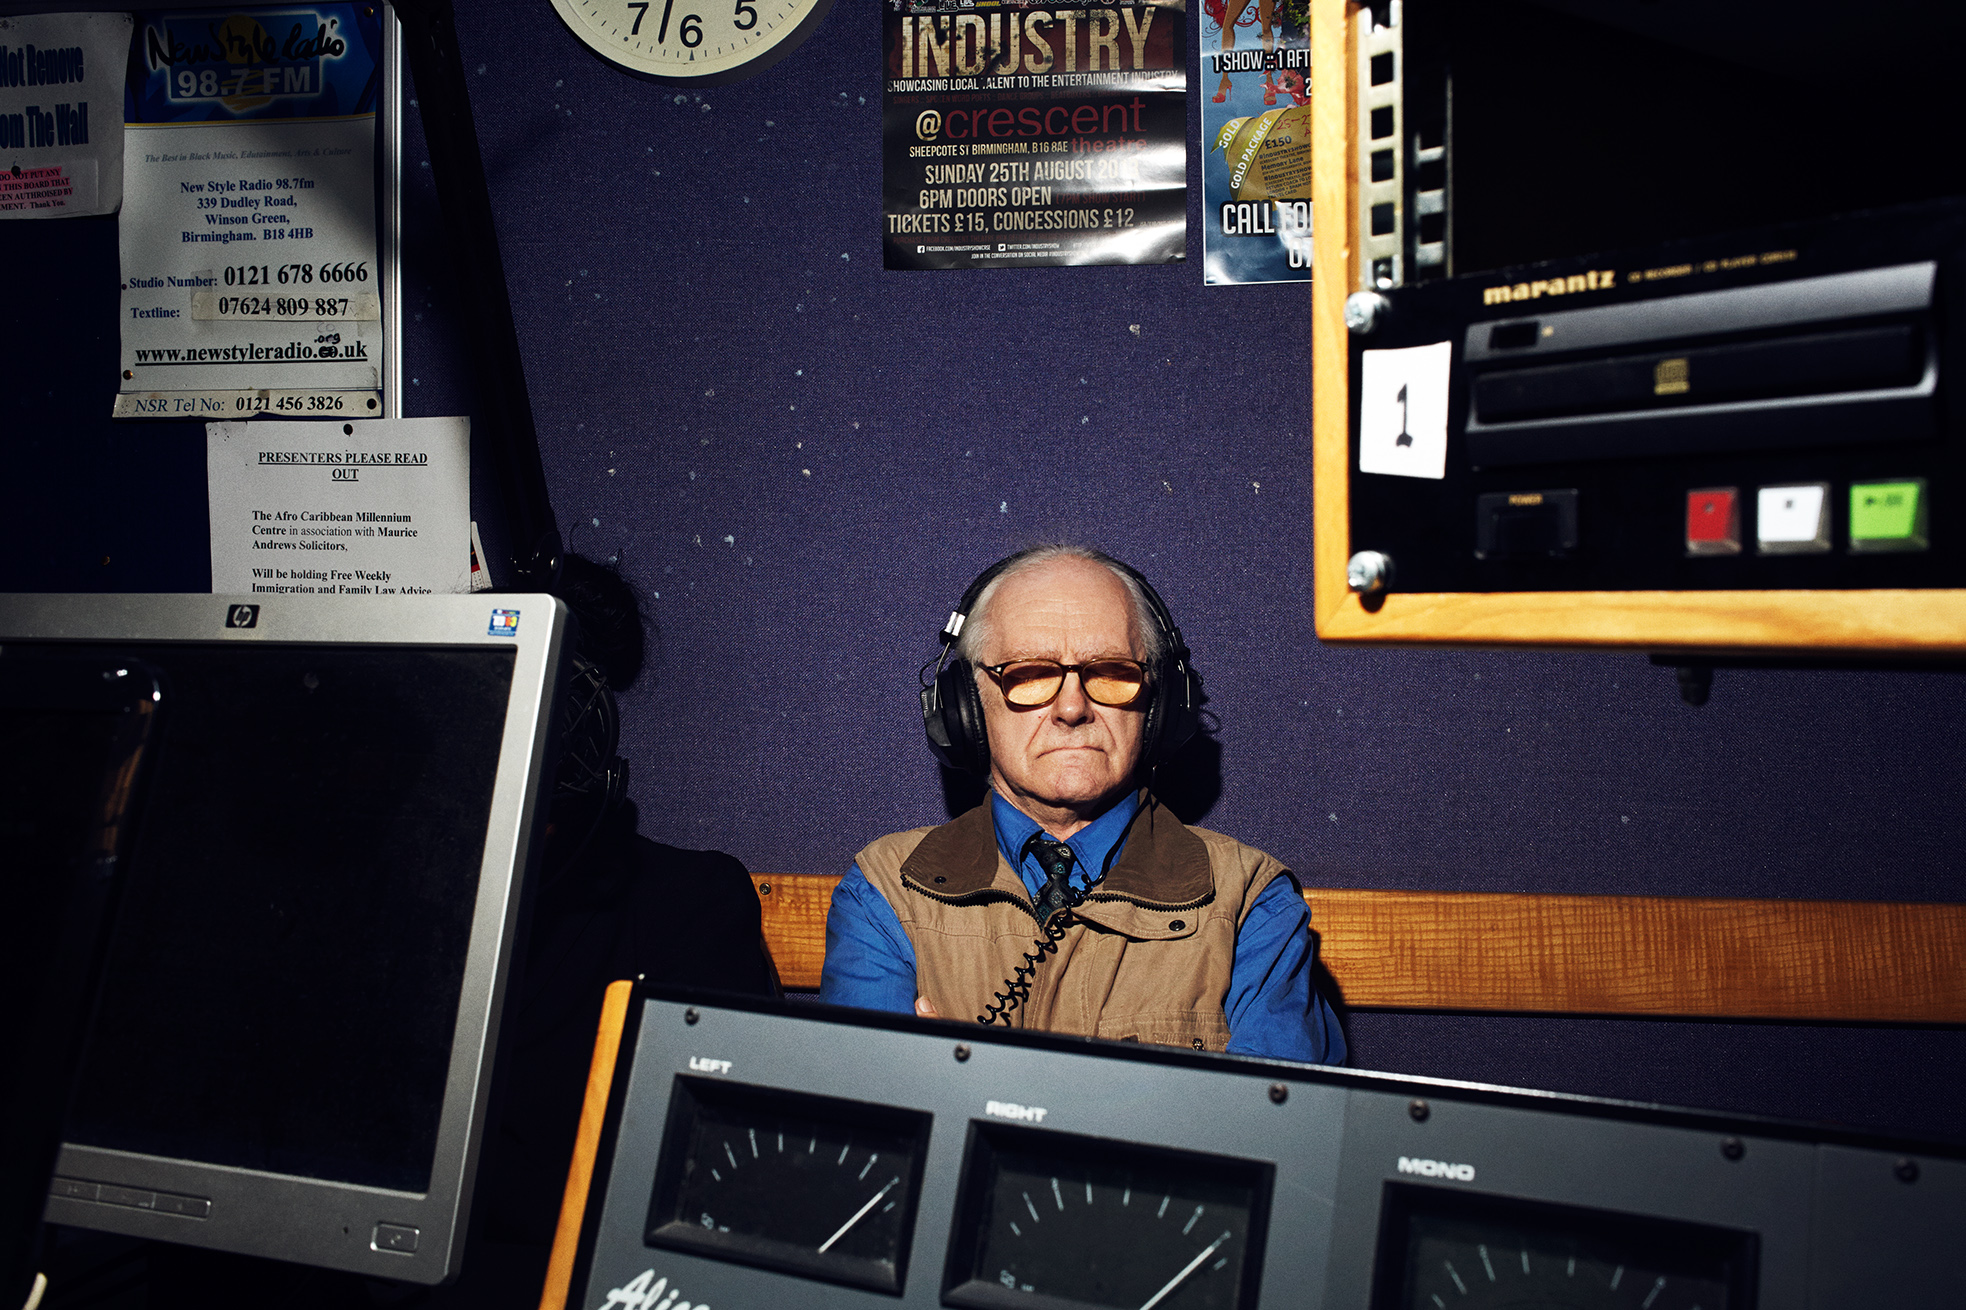 """Ray,""""Getting older does worry me sometimes, when you think of the future and who will look after you. So it's good to talk about things on Radio Club."""""""